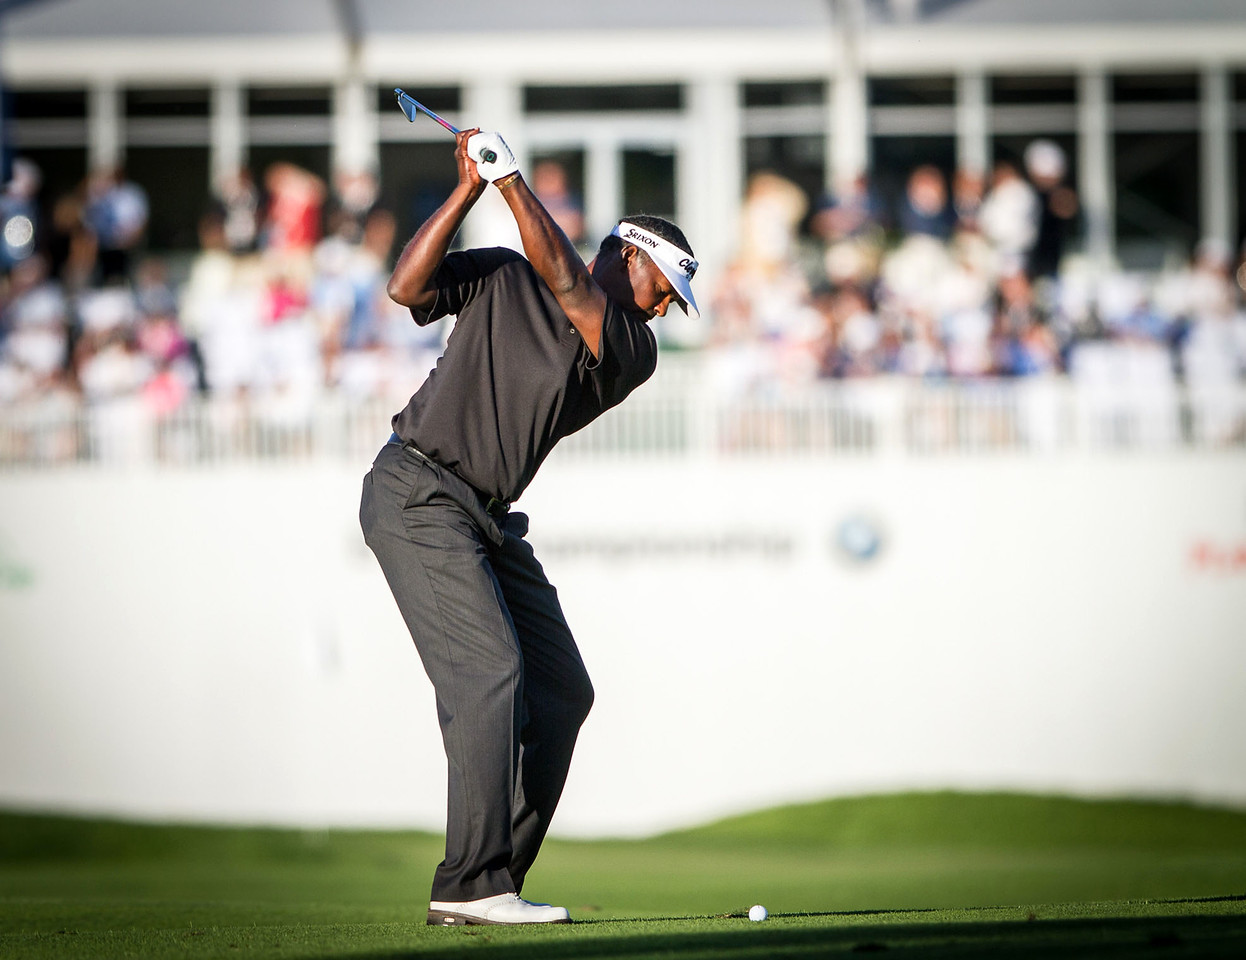 Vijay Singh about to hit his approach shot to 18. Singh is currently tied for the lead at the BMW Championship in Carmel Indiana on Saturday Sept. 8, 2012. (Charles Cherney/WGA)